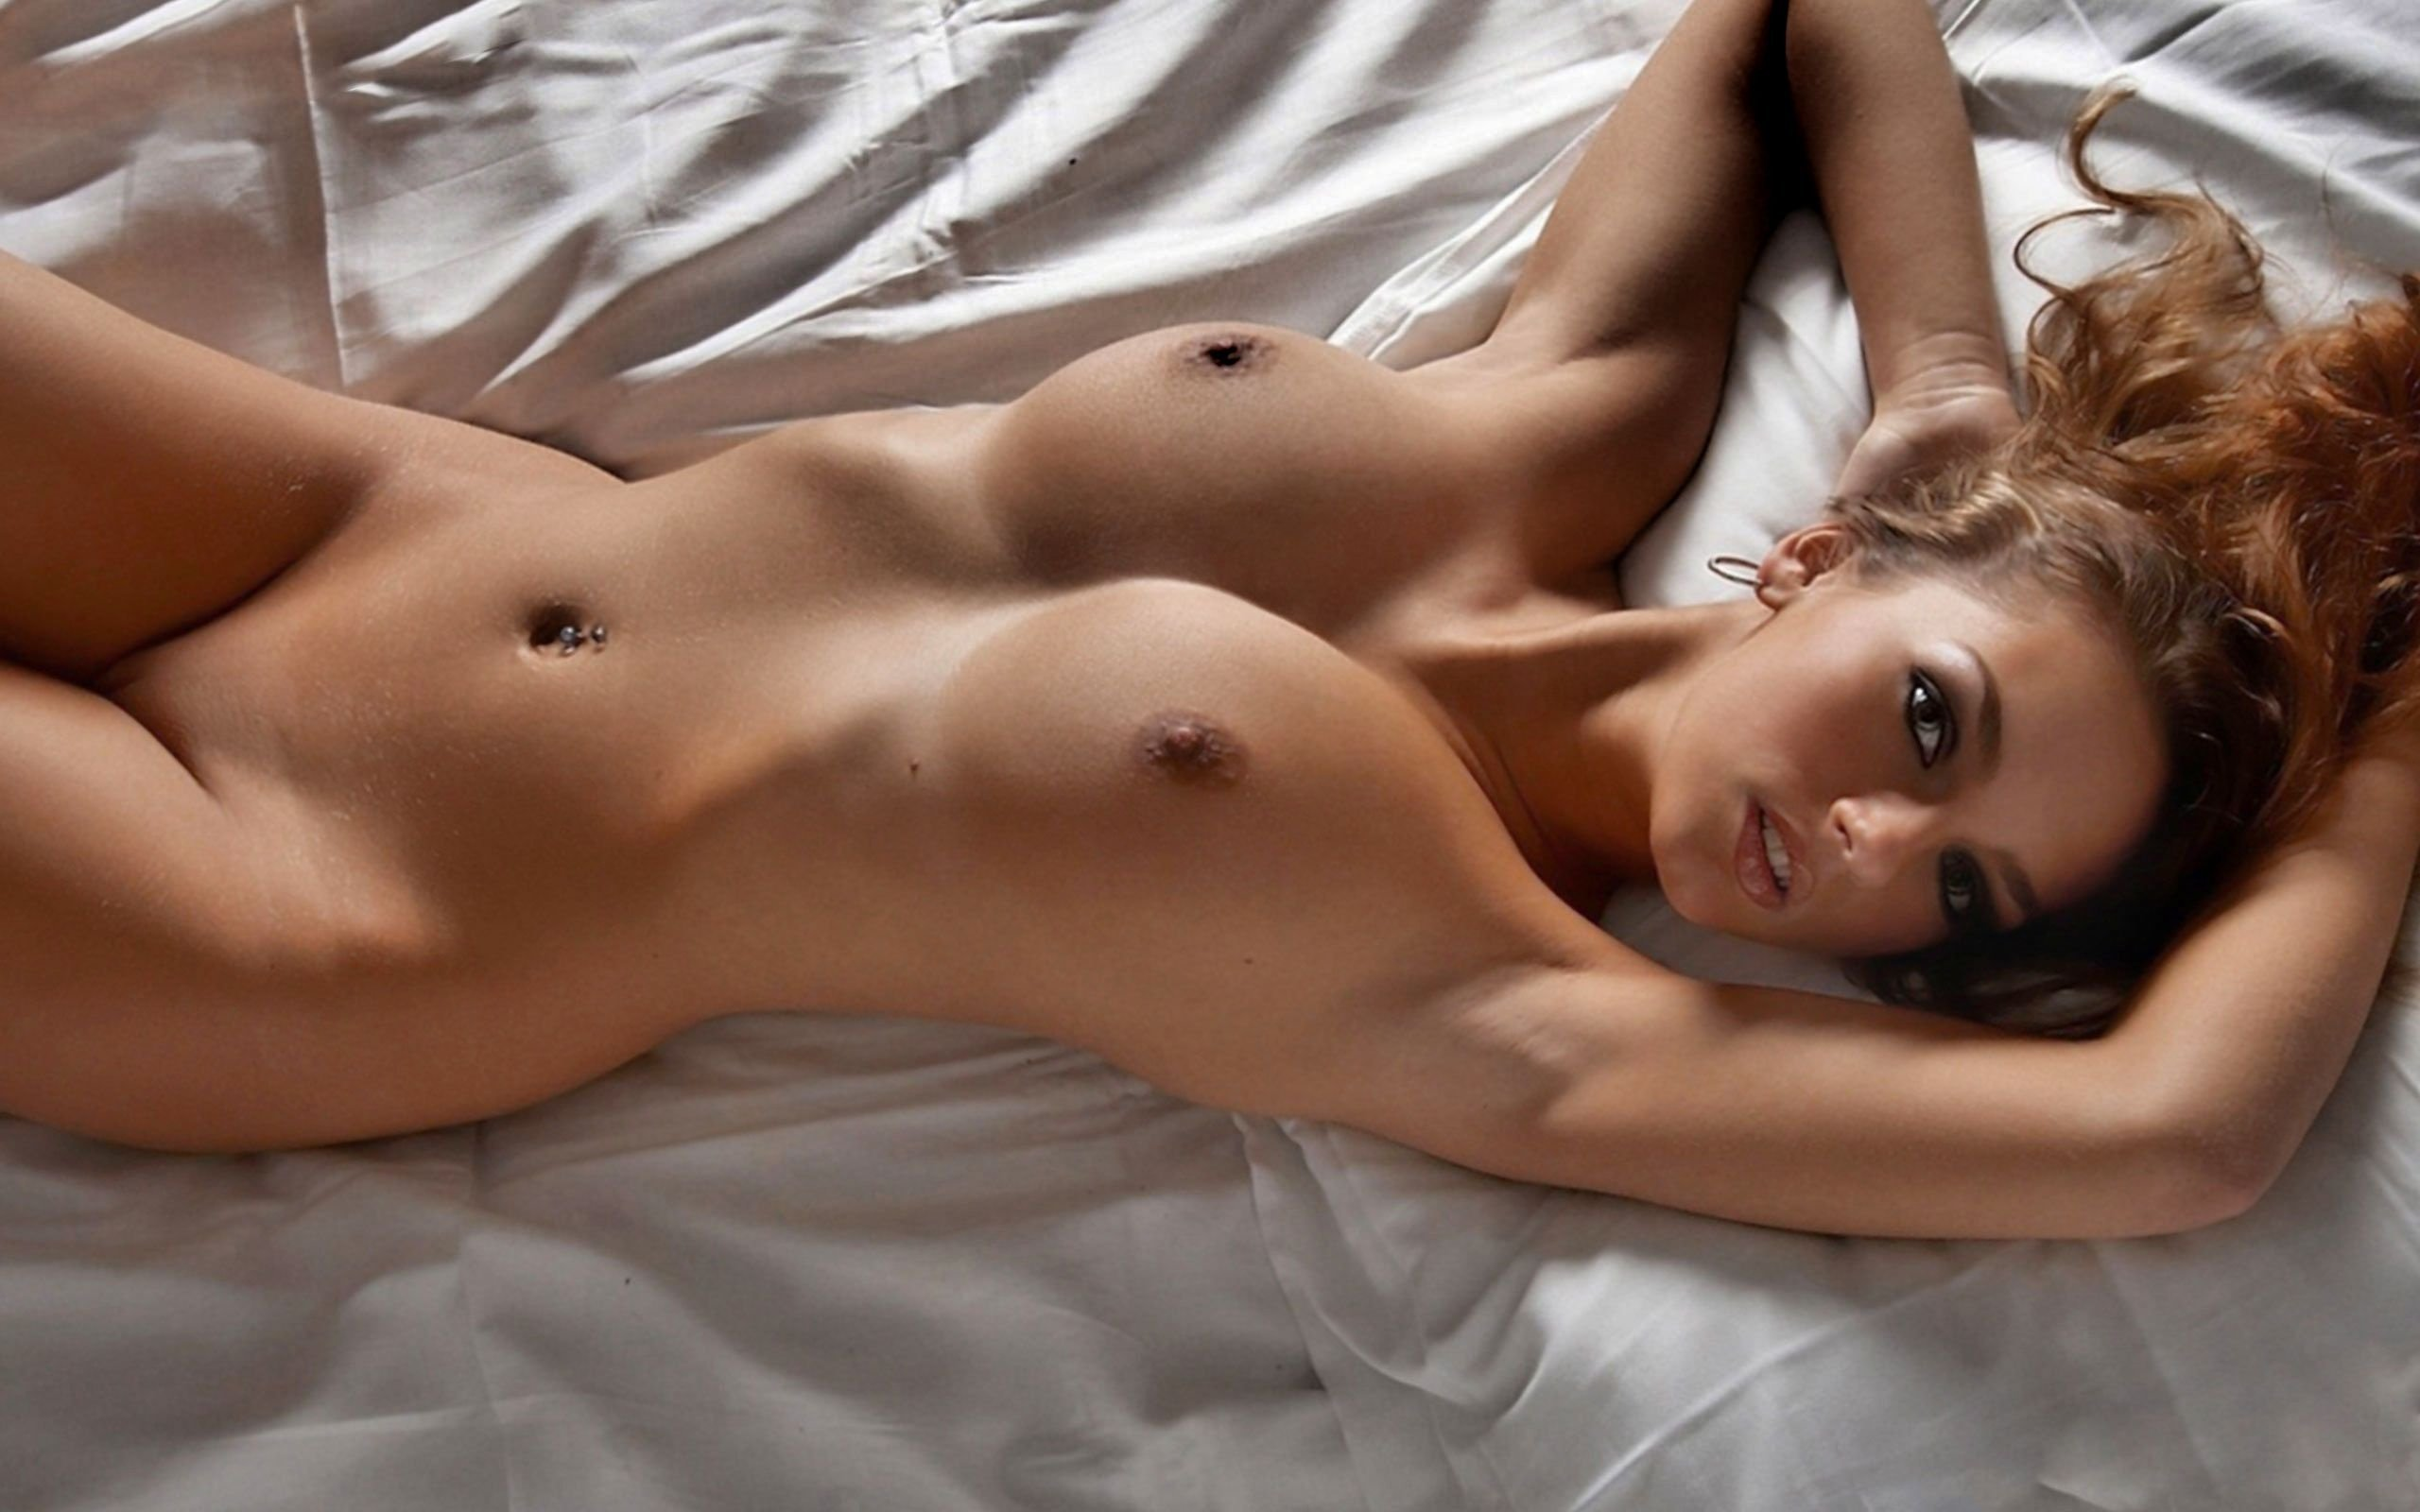 gay-images-of-nude-girls-from-nc-download